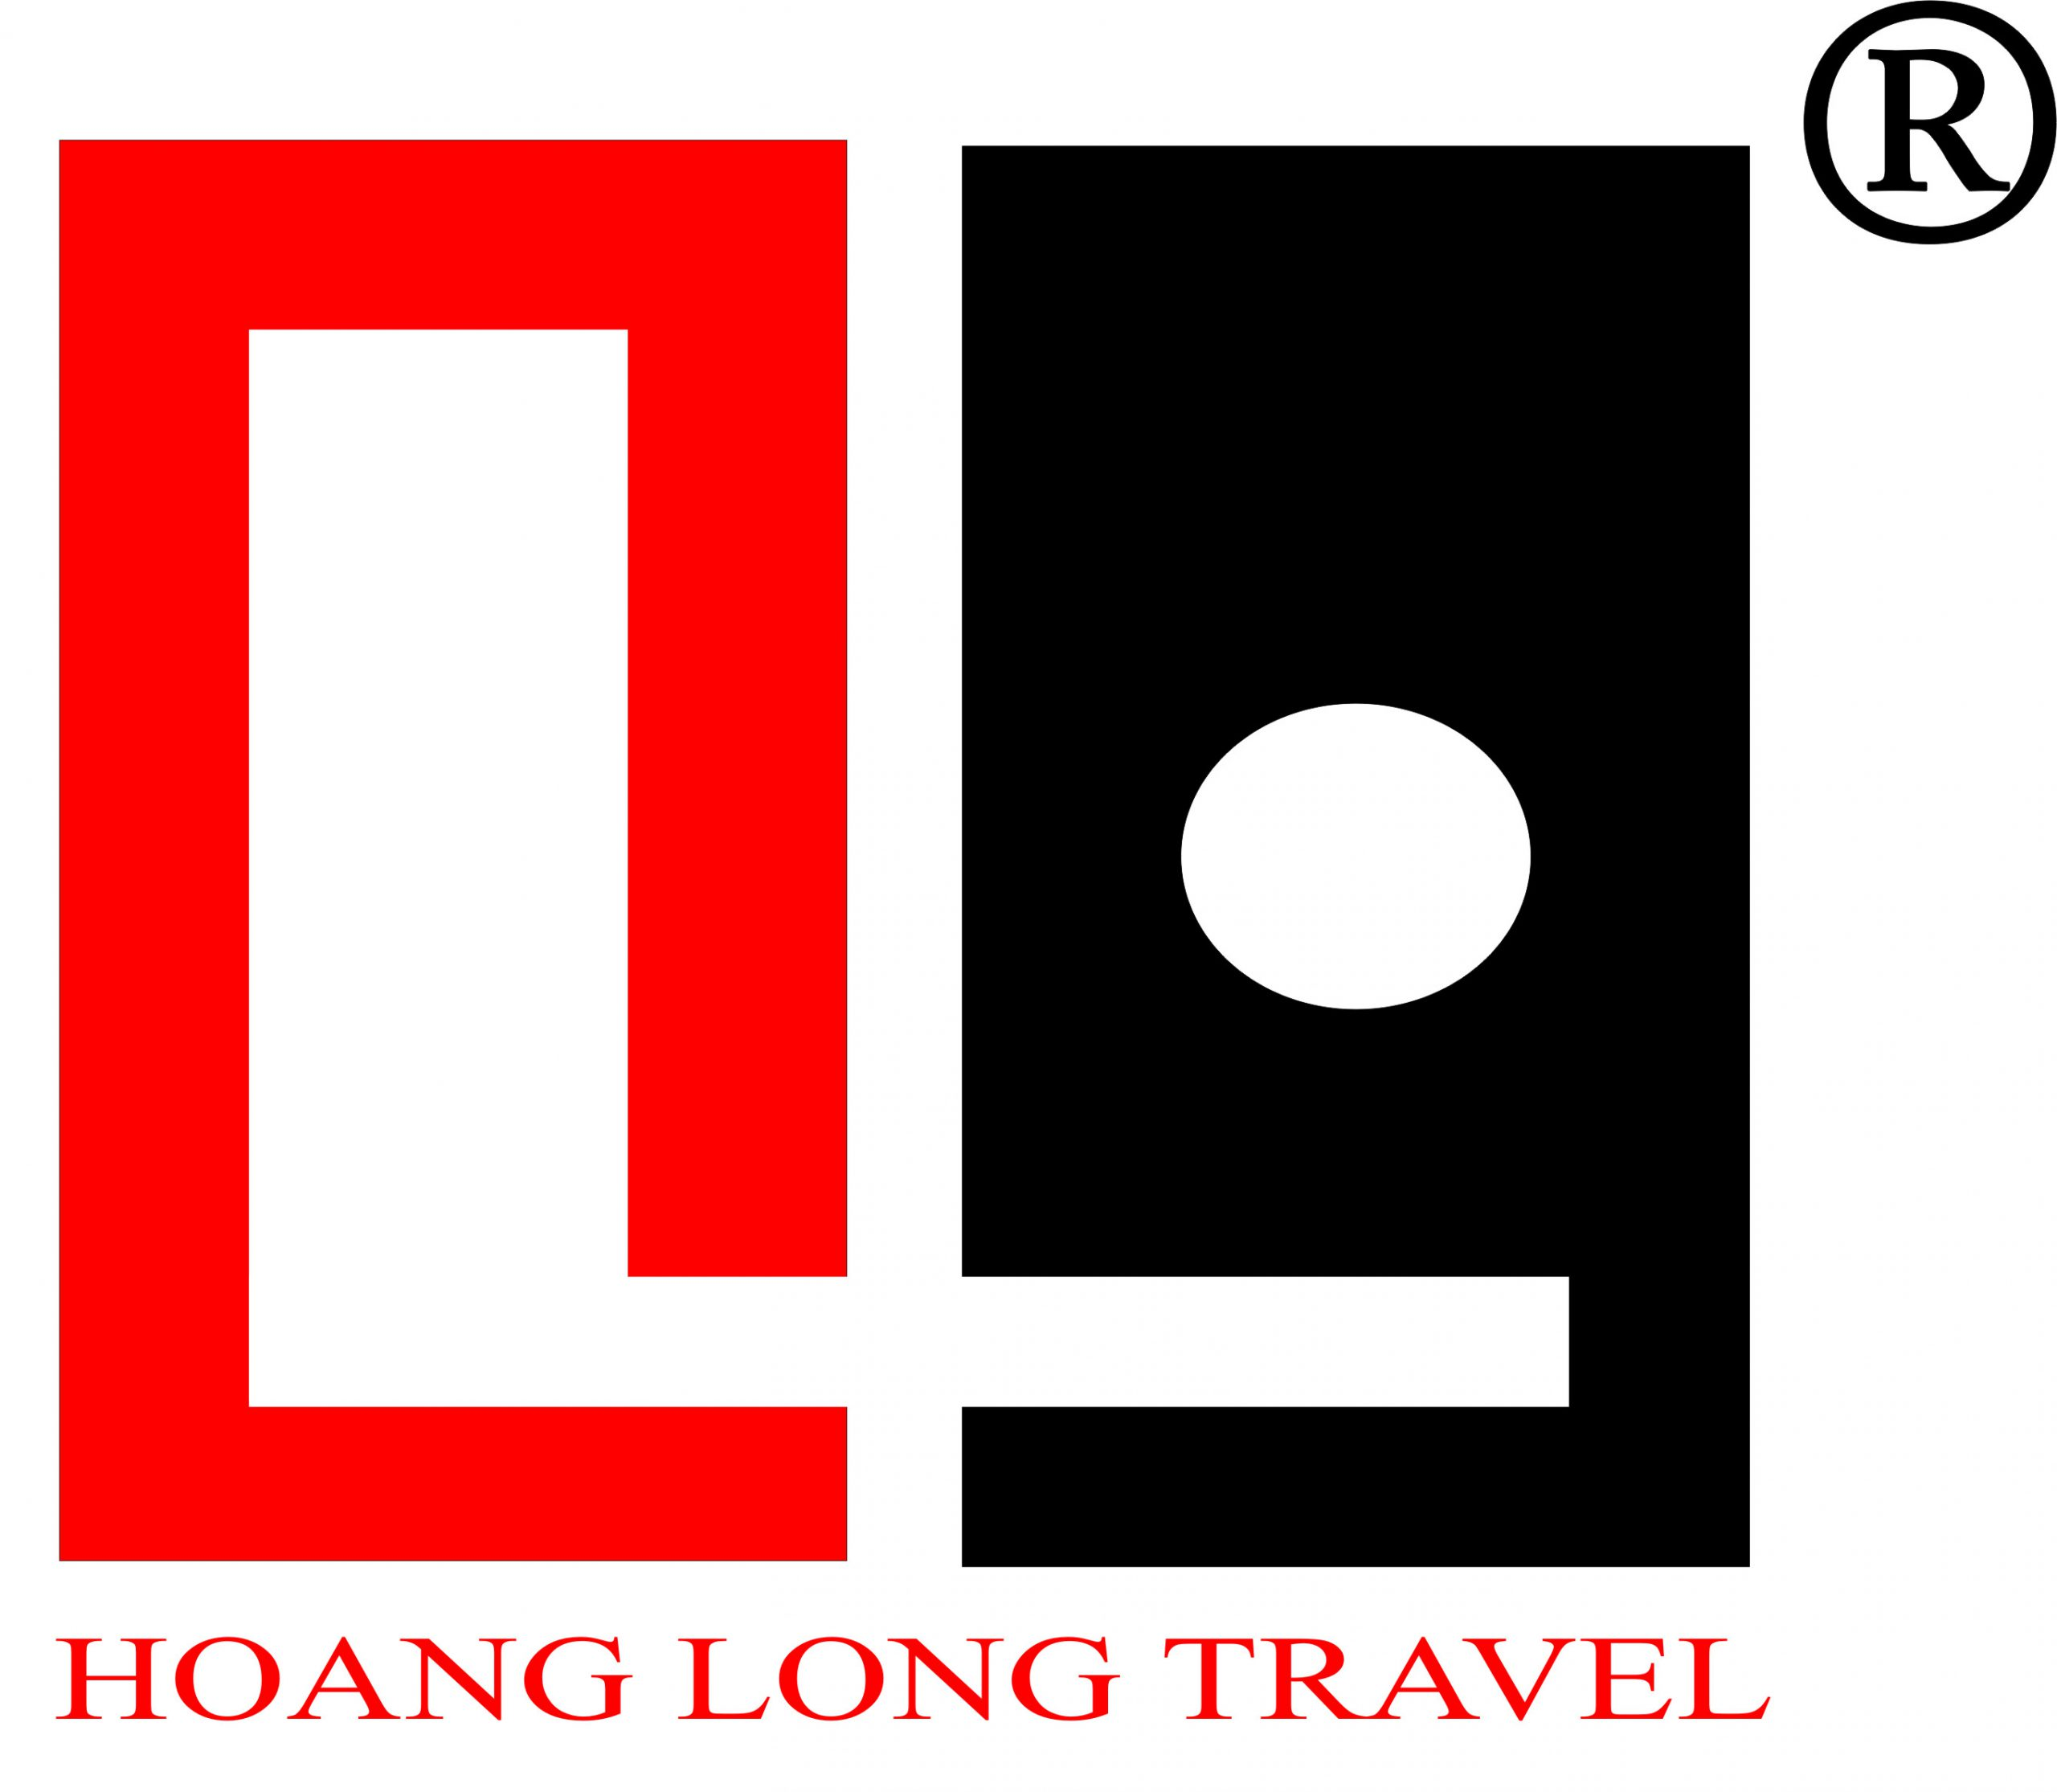 HOANG LONG TRAVEL